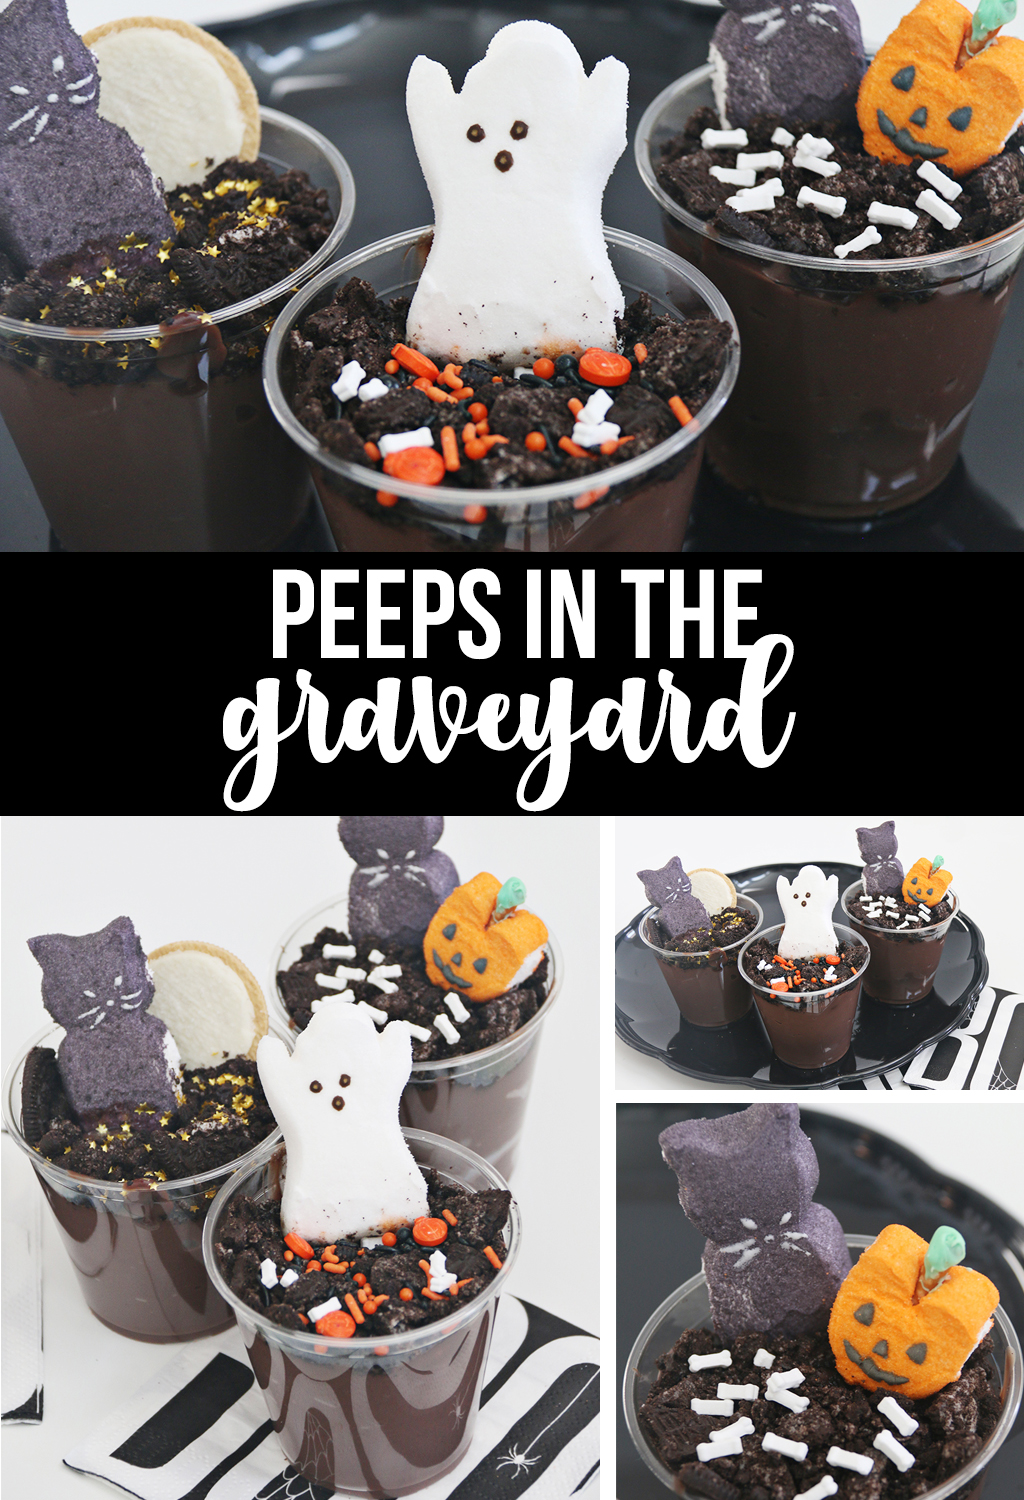 Recipe for Peeps in the Graveyard